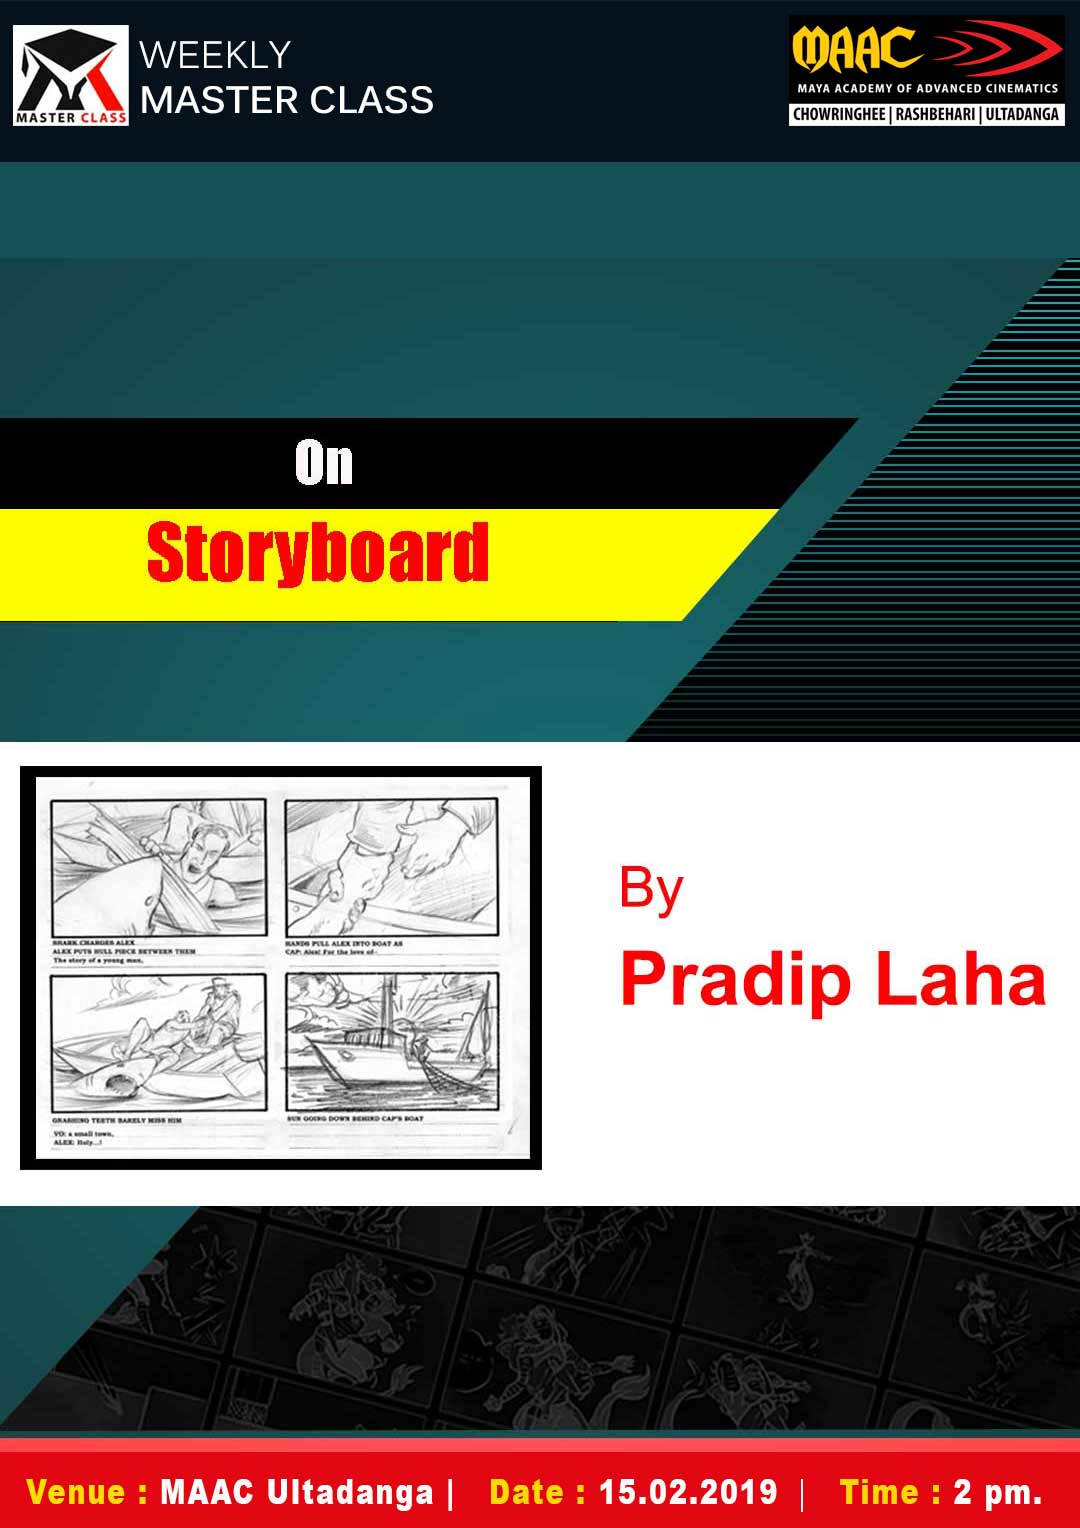 Weekly Master Class on Story Boarding